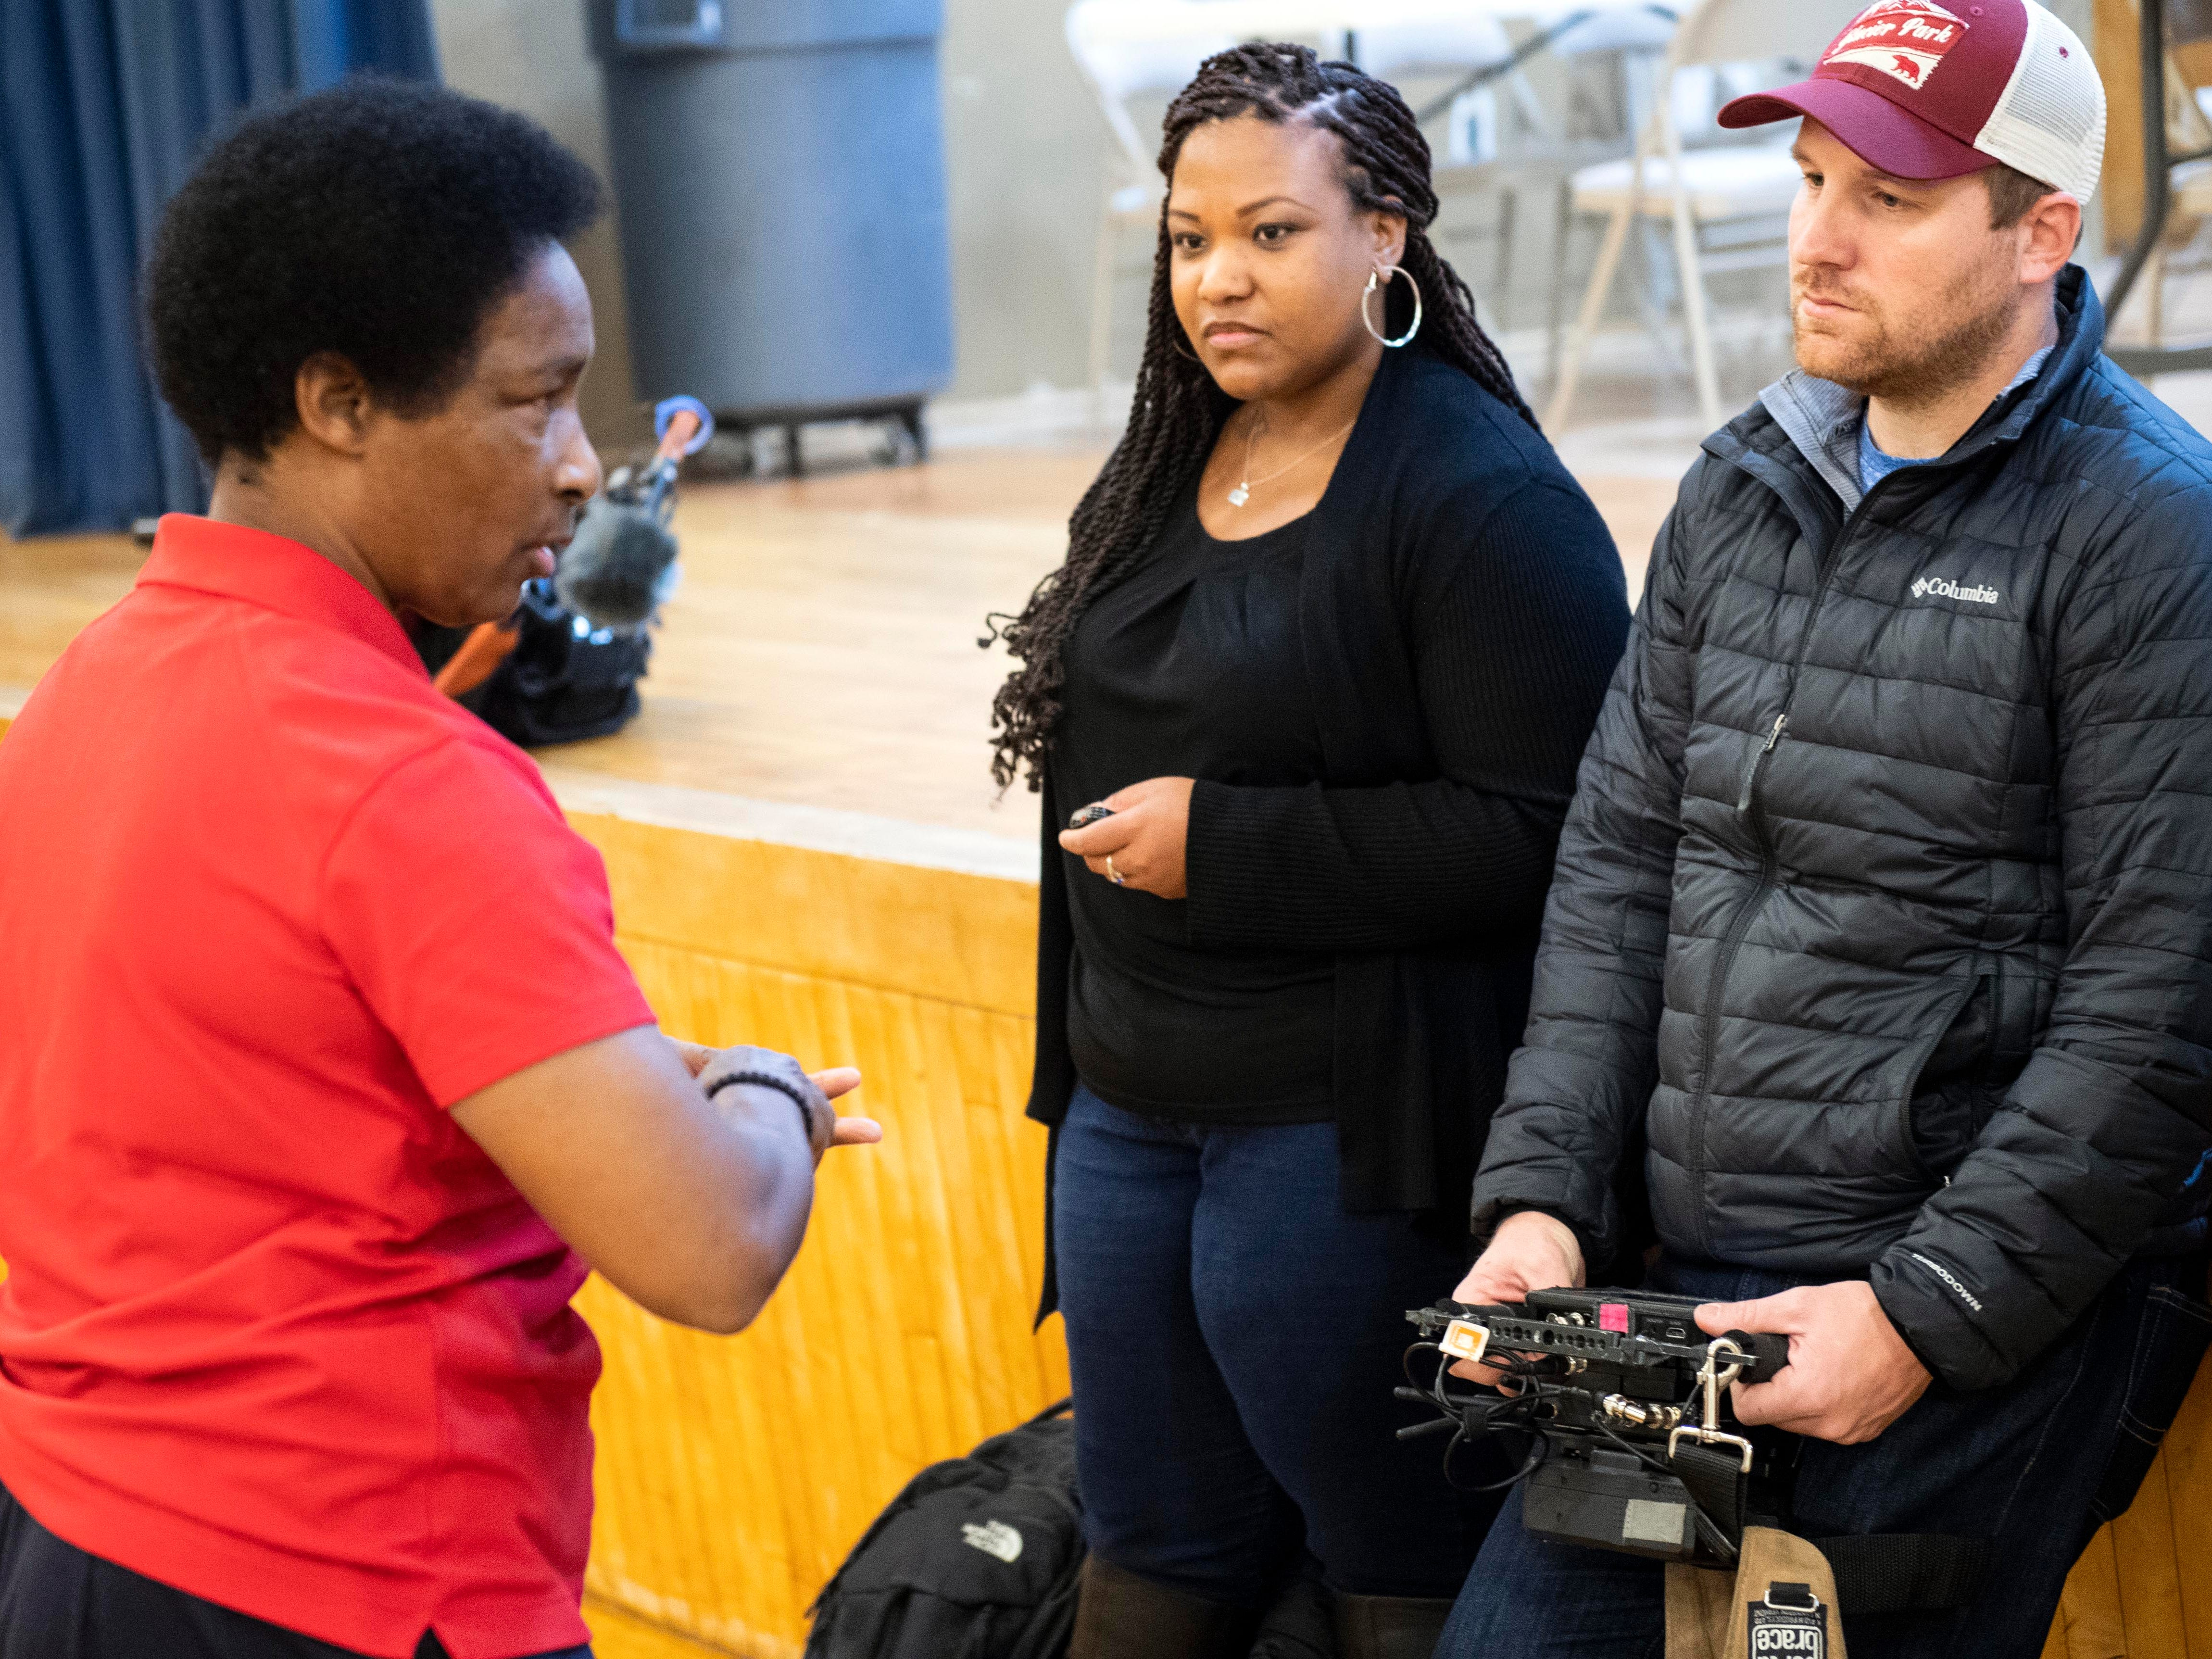 Loretta Claiborne, left, speaks with director Paul Molin, right, after talking to a group of teenagers in the gymnasium of Crispus Attucks in York, Friday, Nov. 30, 2018. ESPN and Special Olympics have partnered to do a documentary on 50 athletes to celebrate 50 years of Special Olympics. The documentary on Claiborne will air in Dec. 2018.